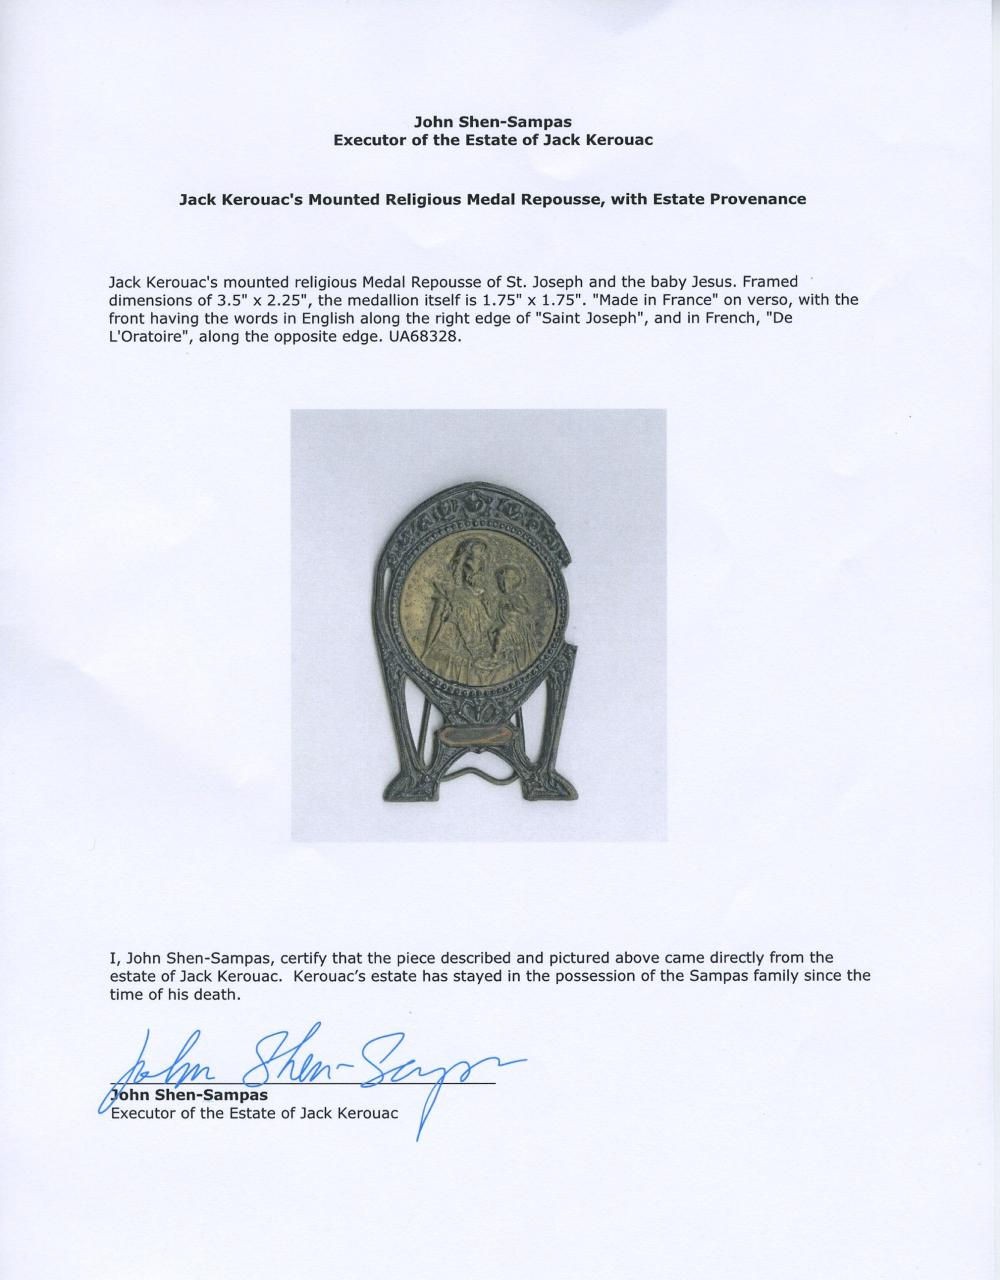 Jack Kerouac's Mounted Religious Medal Repousse, with Estate Provenance